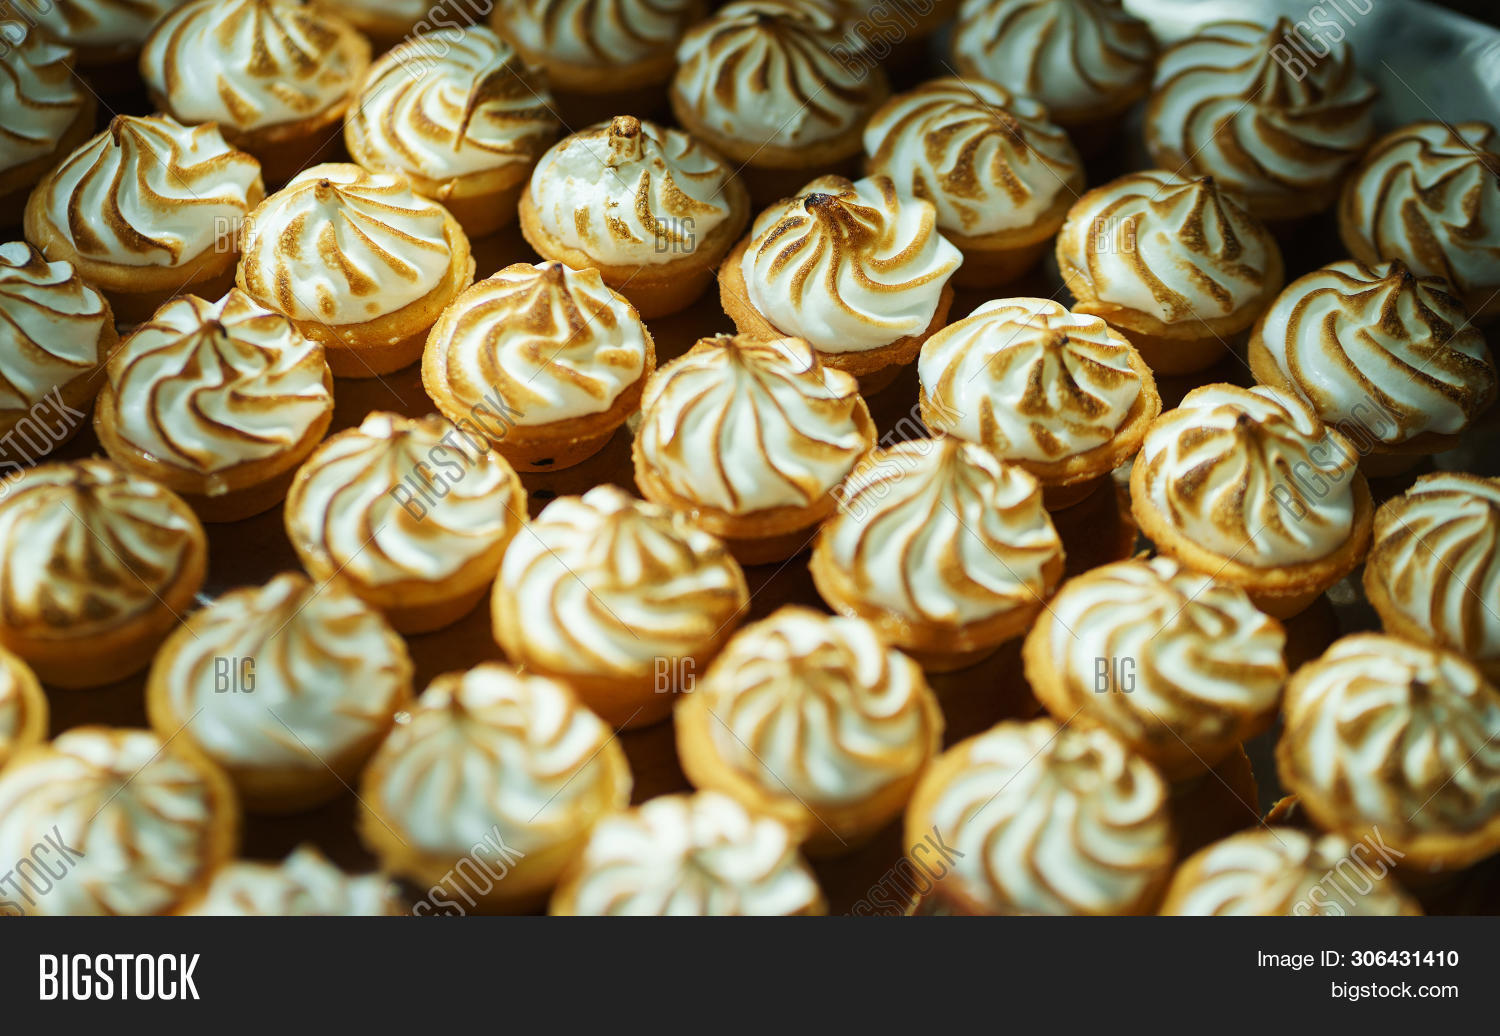 Sweet desserts and pastries on the table during the event. Catering servicing of guests and participants during mass events. Large number of sweet and cupcakes. Soft focus, bokeh, abstract.